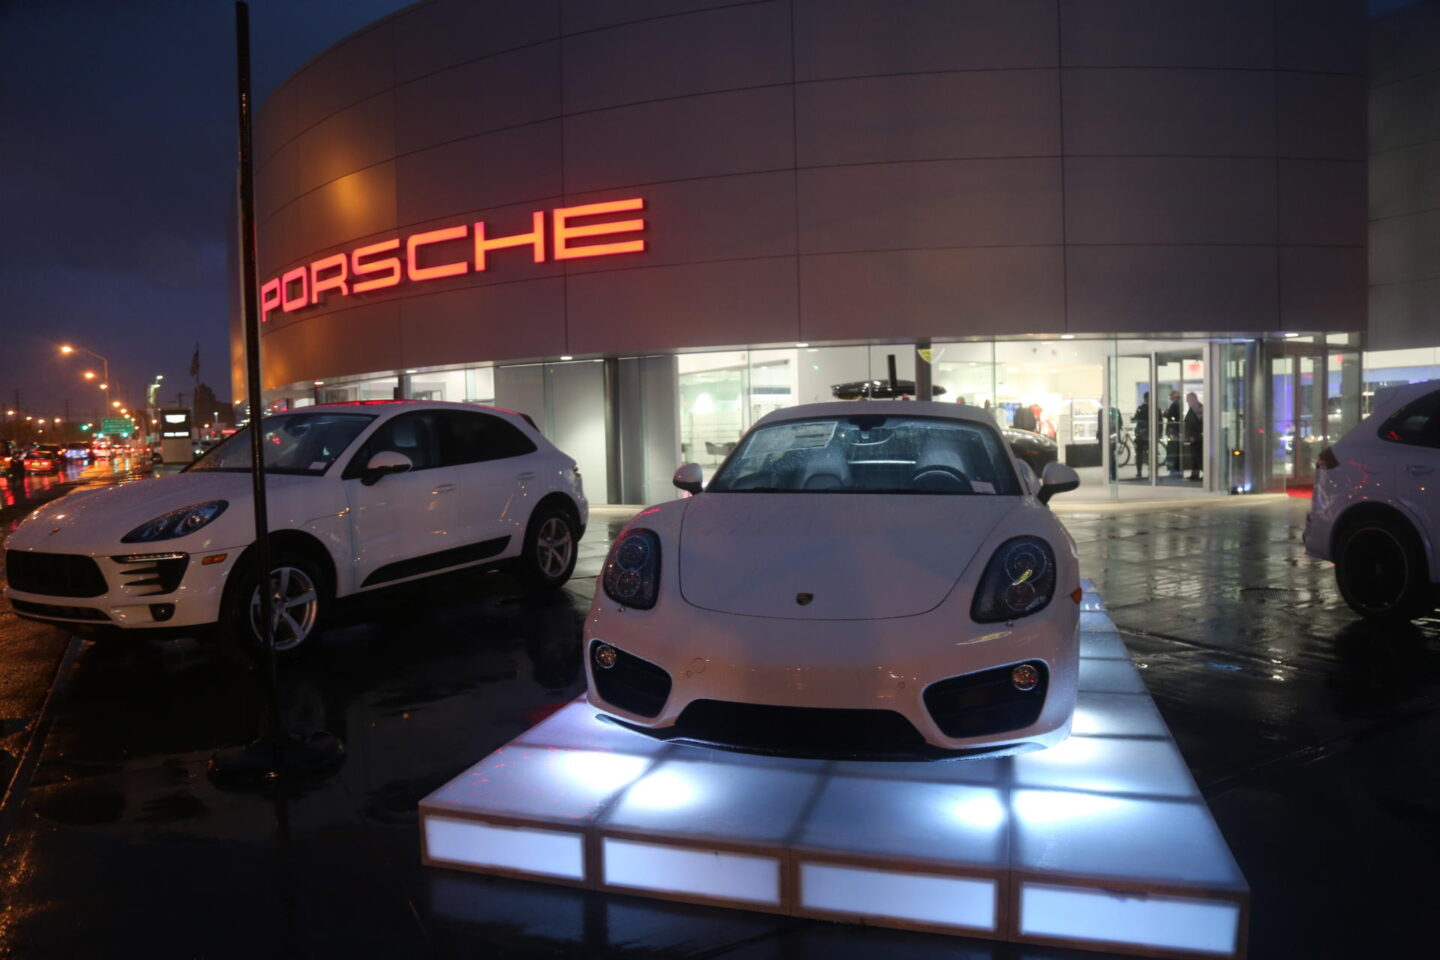 Grand Opening of Porsche of South Shore